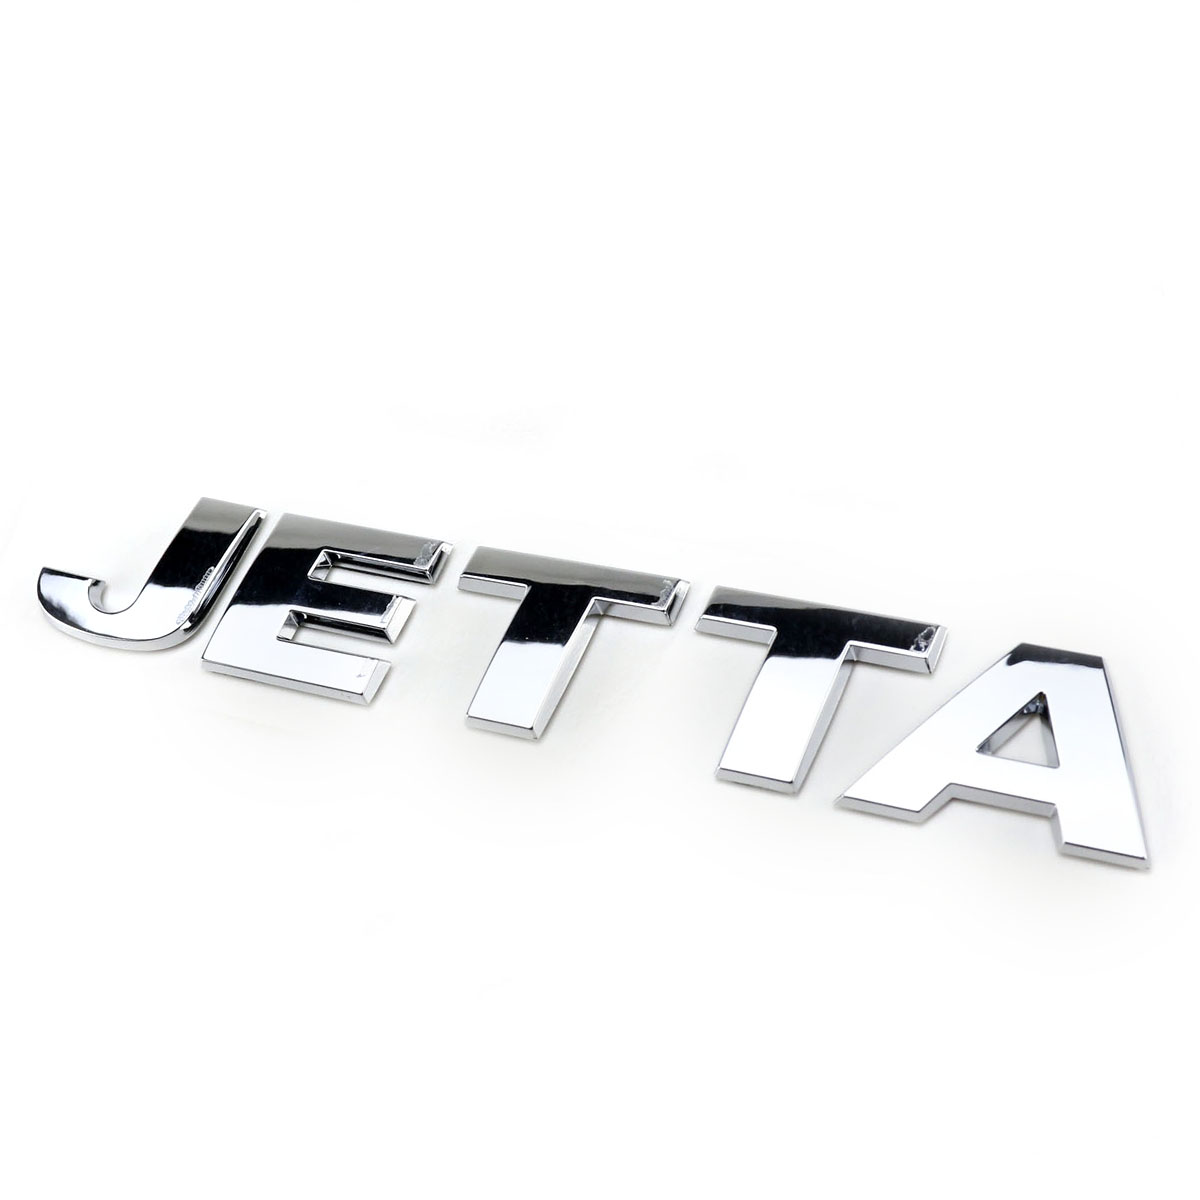 OEM Jetta Emblem Rear Trunk Lid Car Accessories Decal Badge Sticker for VW Volkswagen Logo Silver Chrome auto chrome camaro letters for 1968 1969 camaro emblem badge sticker